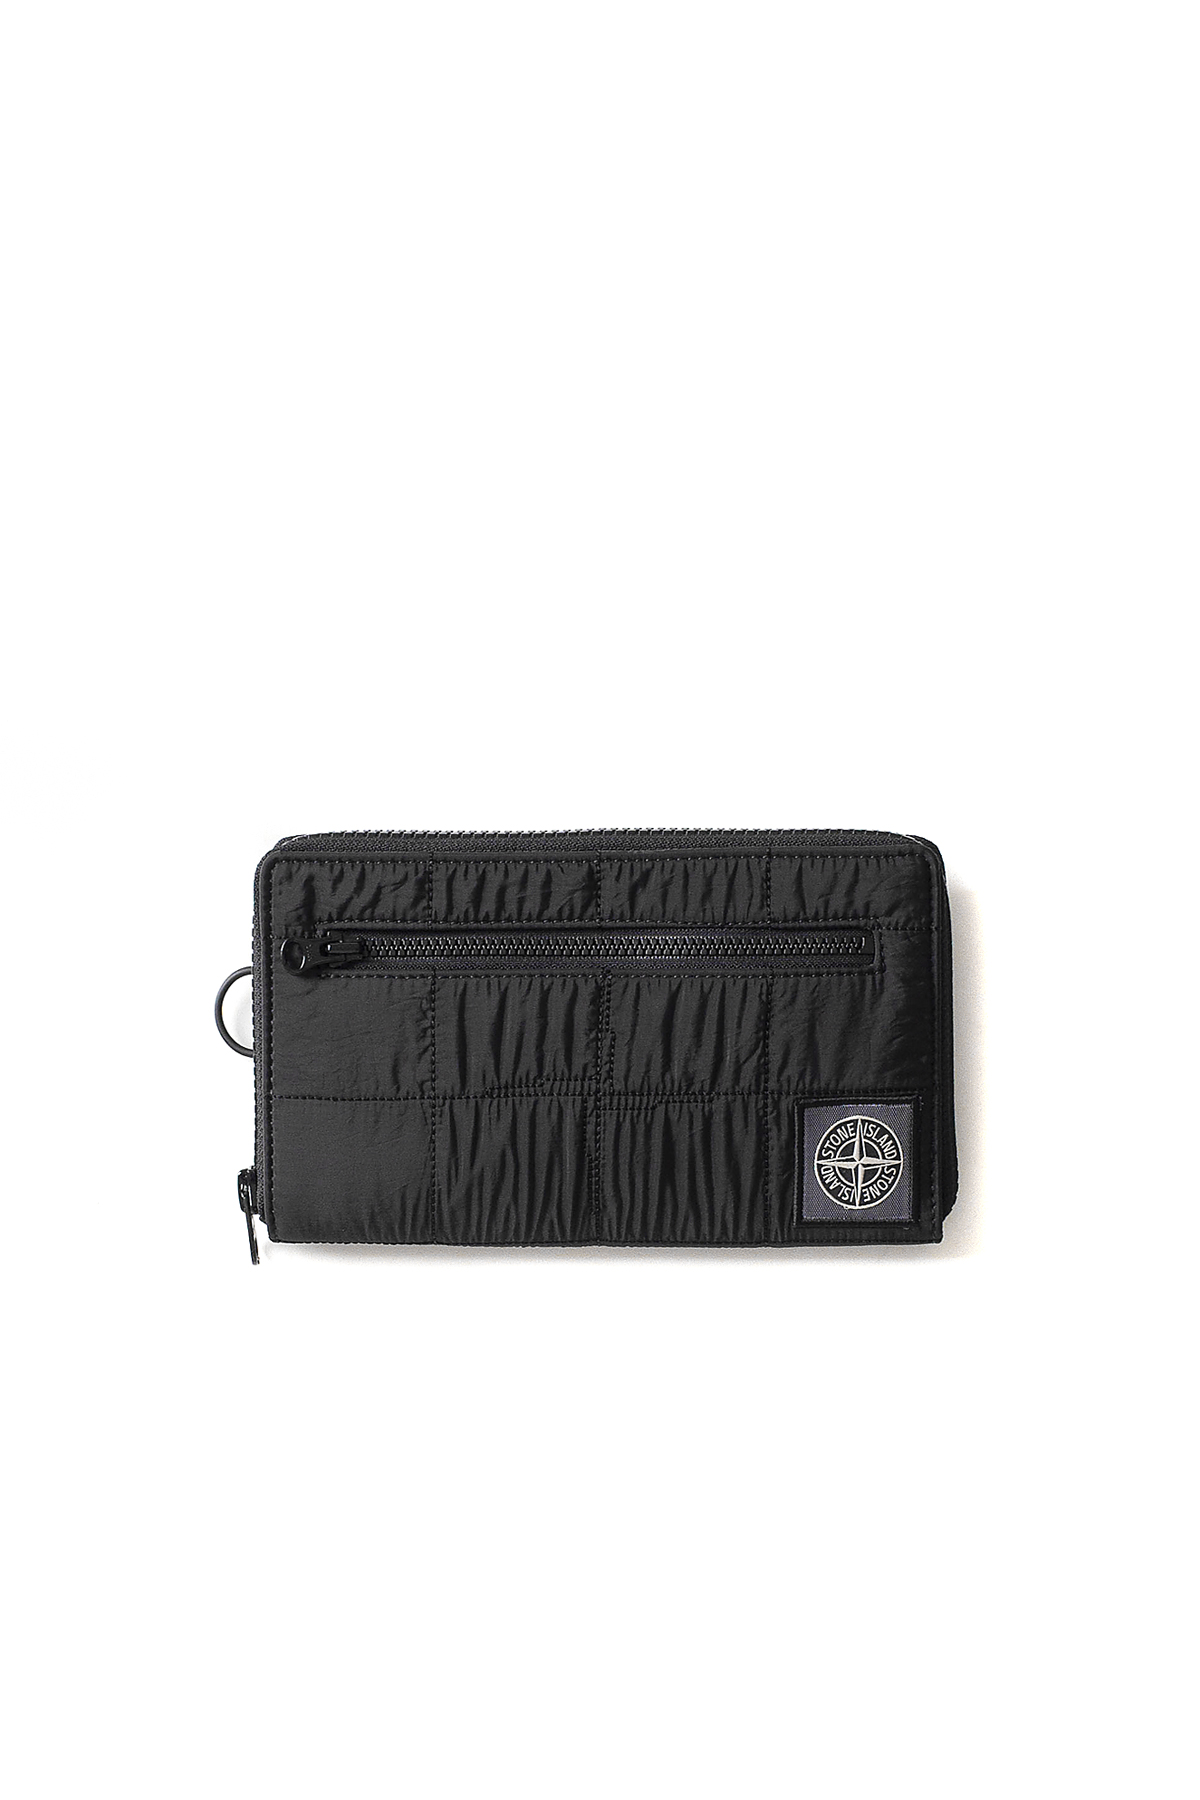 Stone Island : Zipper Wallet (Black)